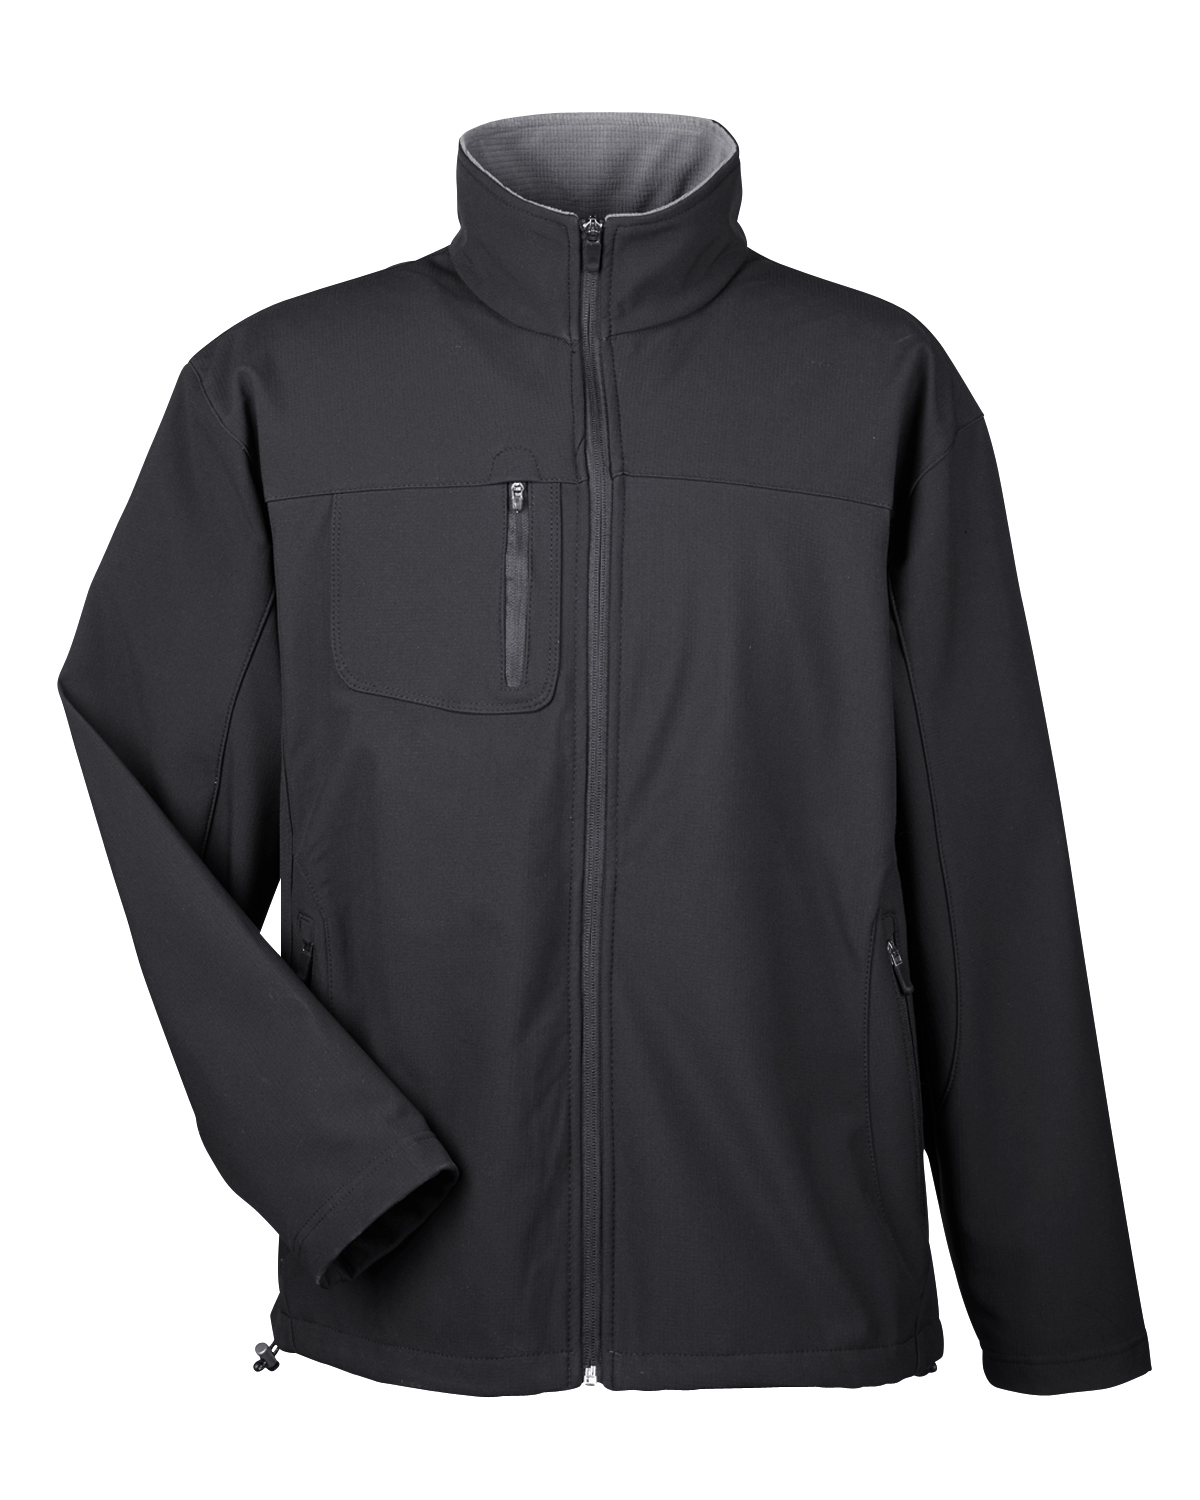 Ultra Club 8280 - Adult Soft-Shell Jacket with Cadet ...